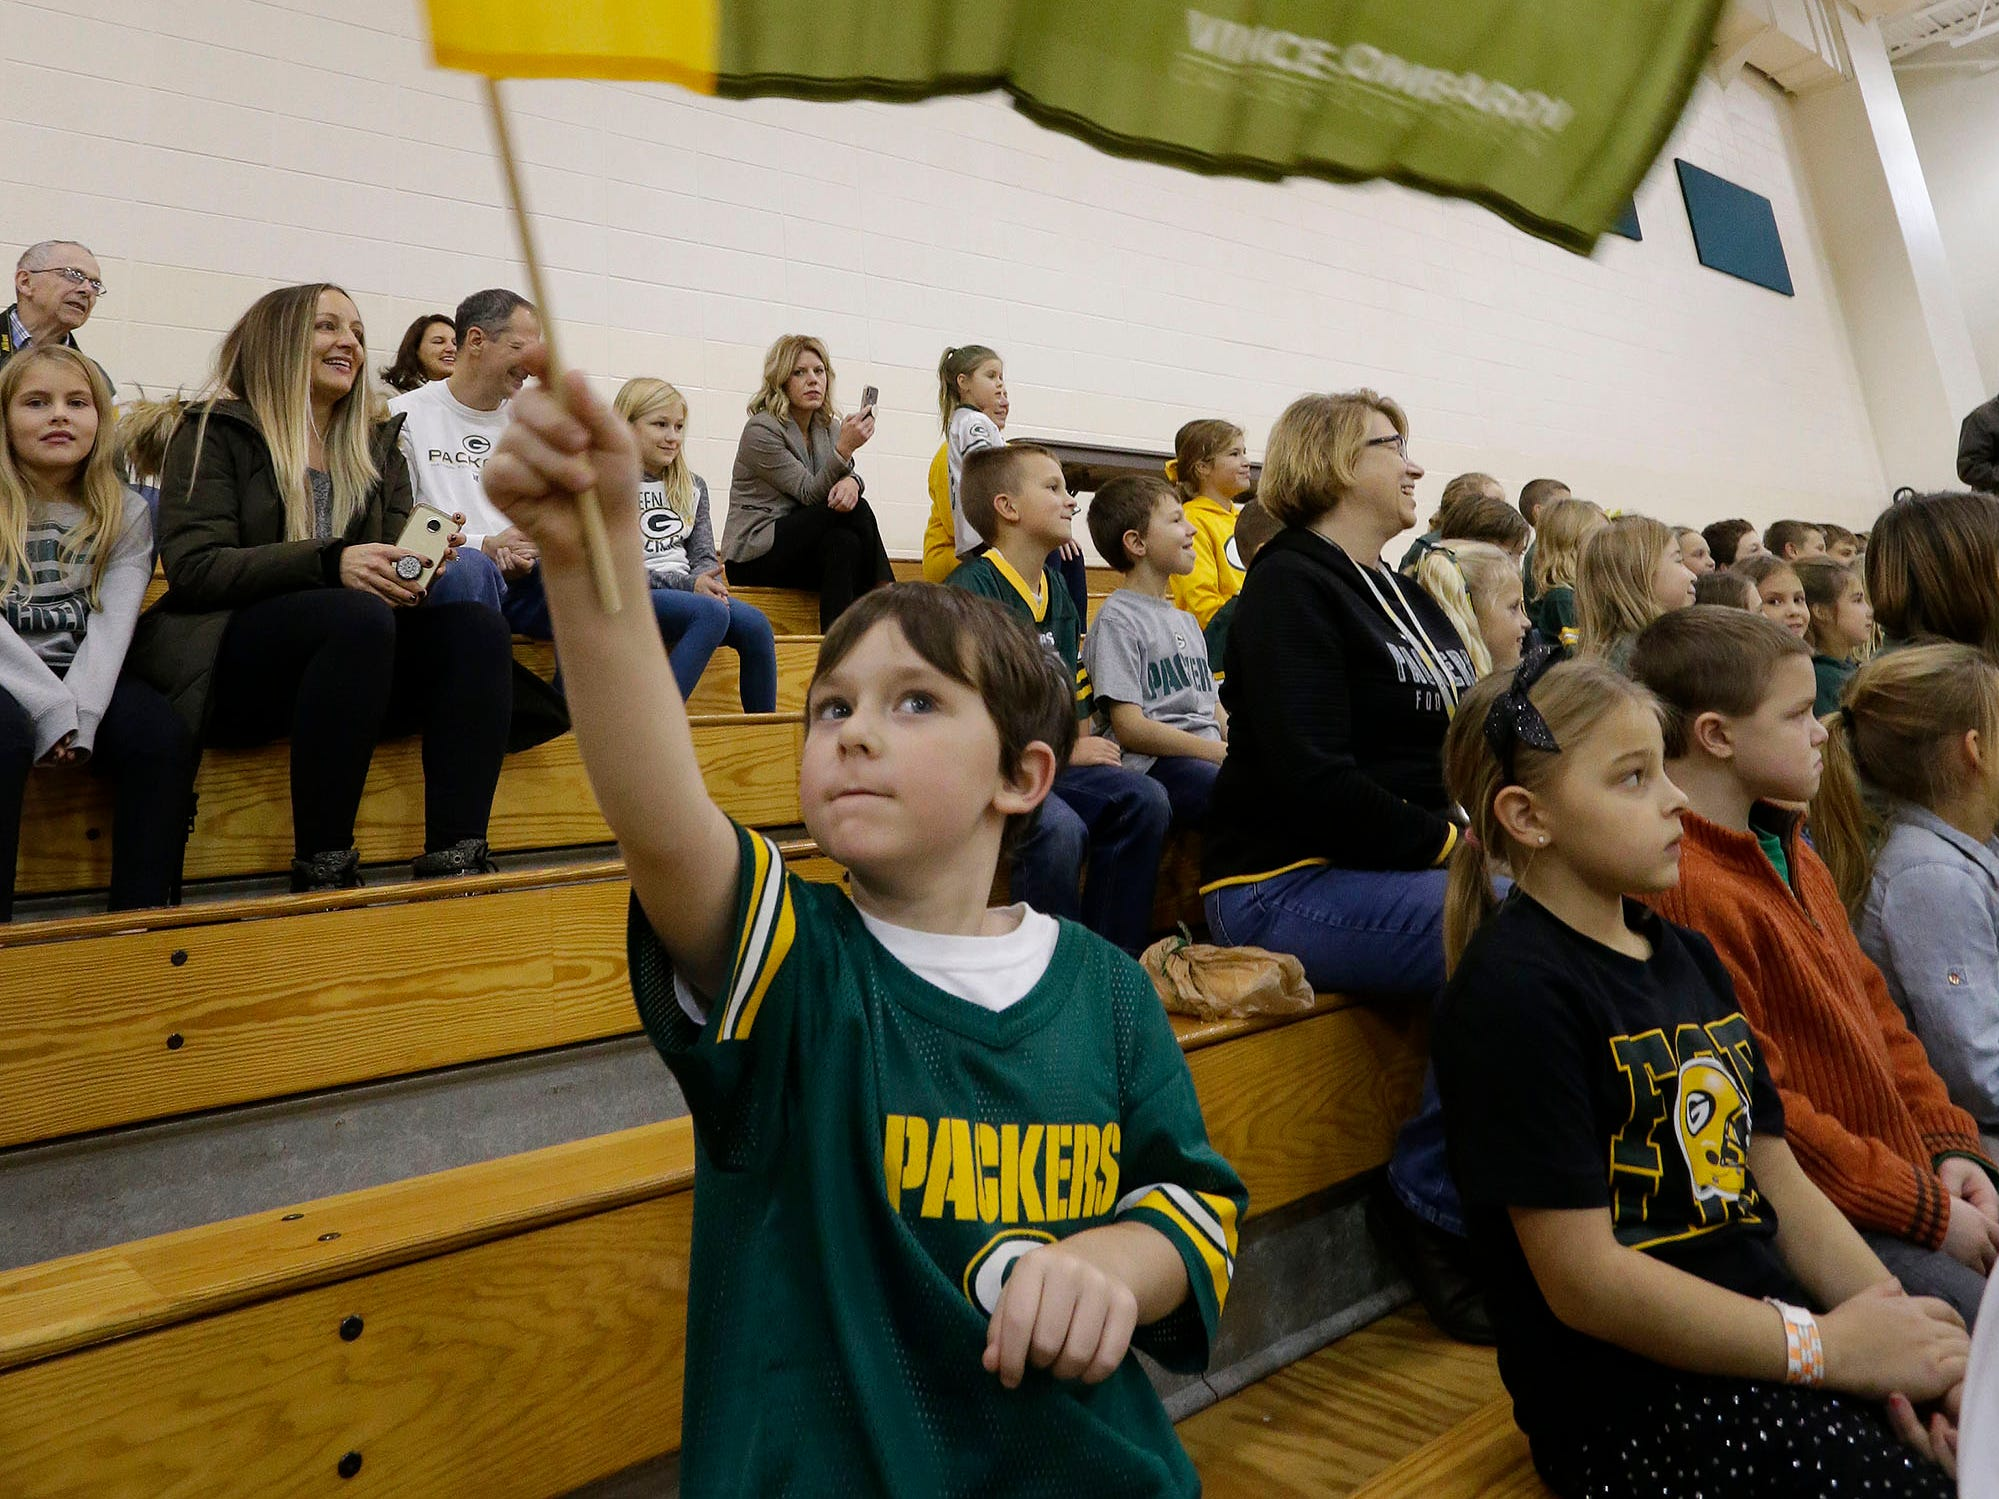 Timothy Barnes, 5, waves a Green Bay Packer banner in honor of Packer Jamaal Williams visit to Plymouth's St. John the Baptist Catholic School, Tuesday, November 6, 2018, in Plymouth, Wis.